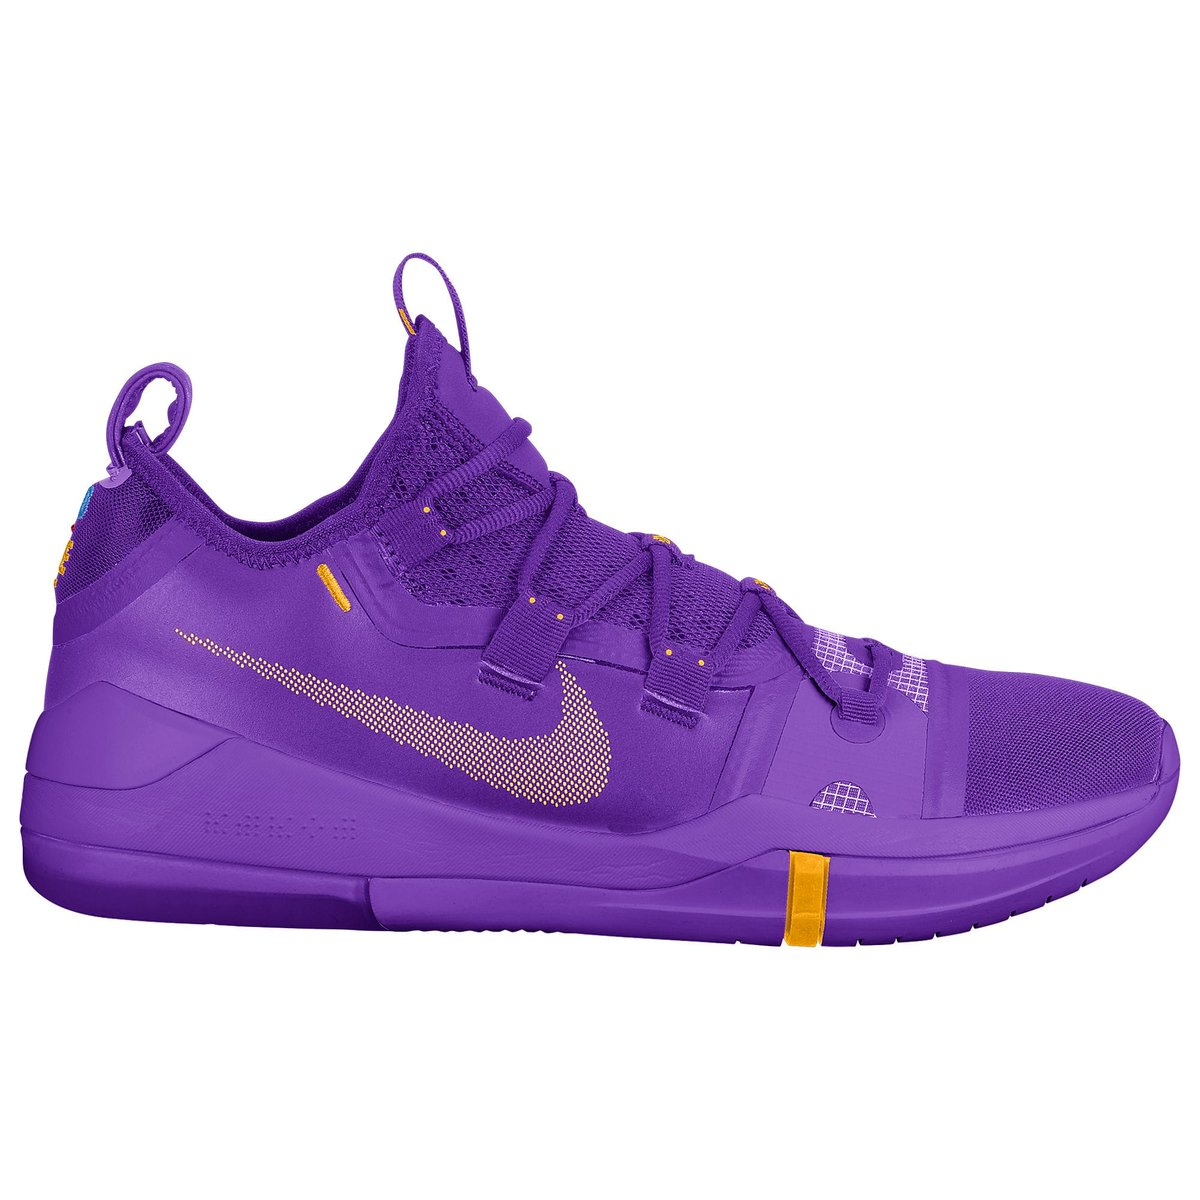 c23df10e4f4 seven new colorways of the latest nike kobe ad available to pre order now